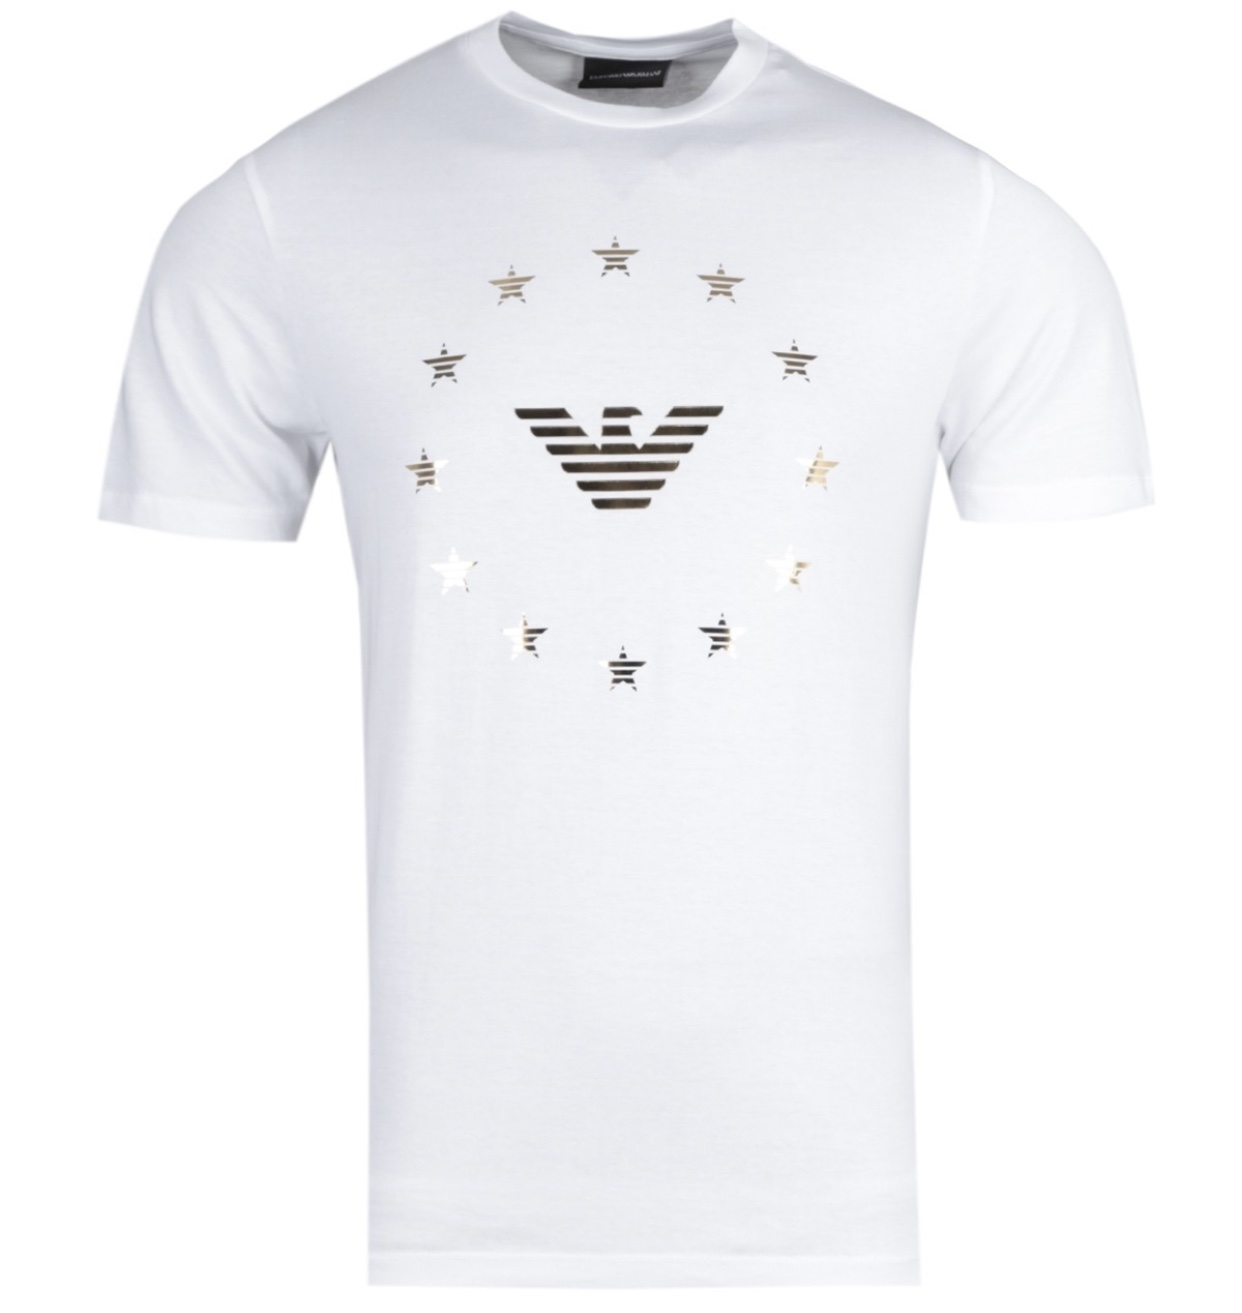 White gold star t-shirt